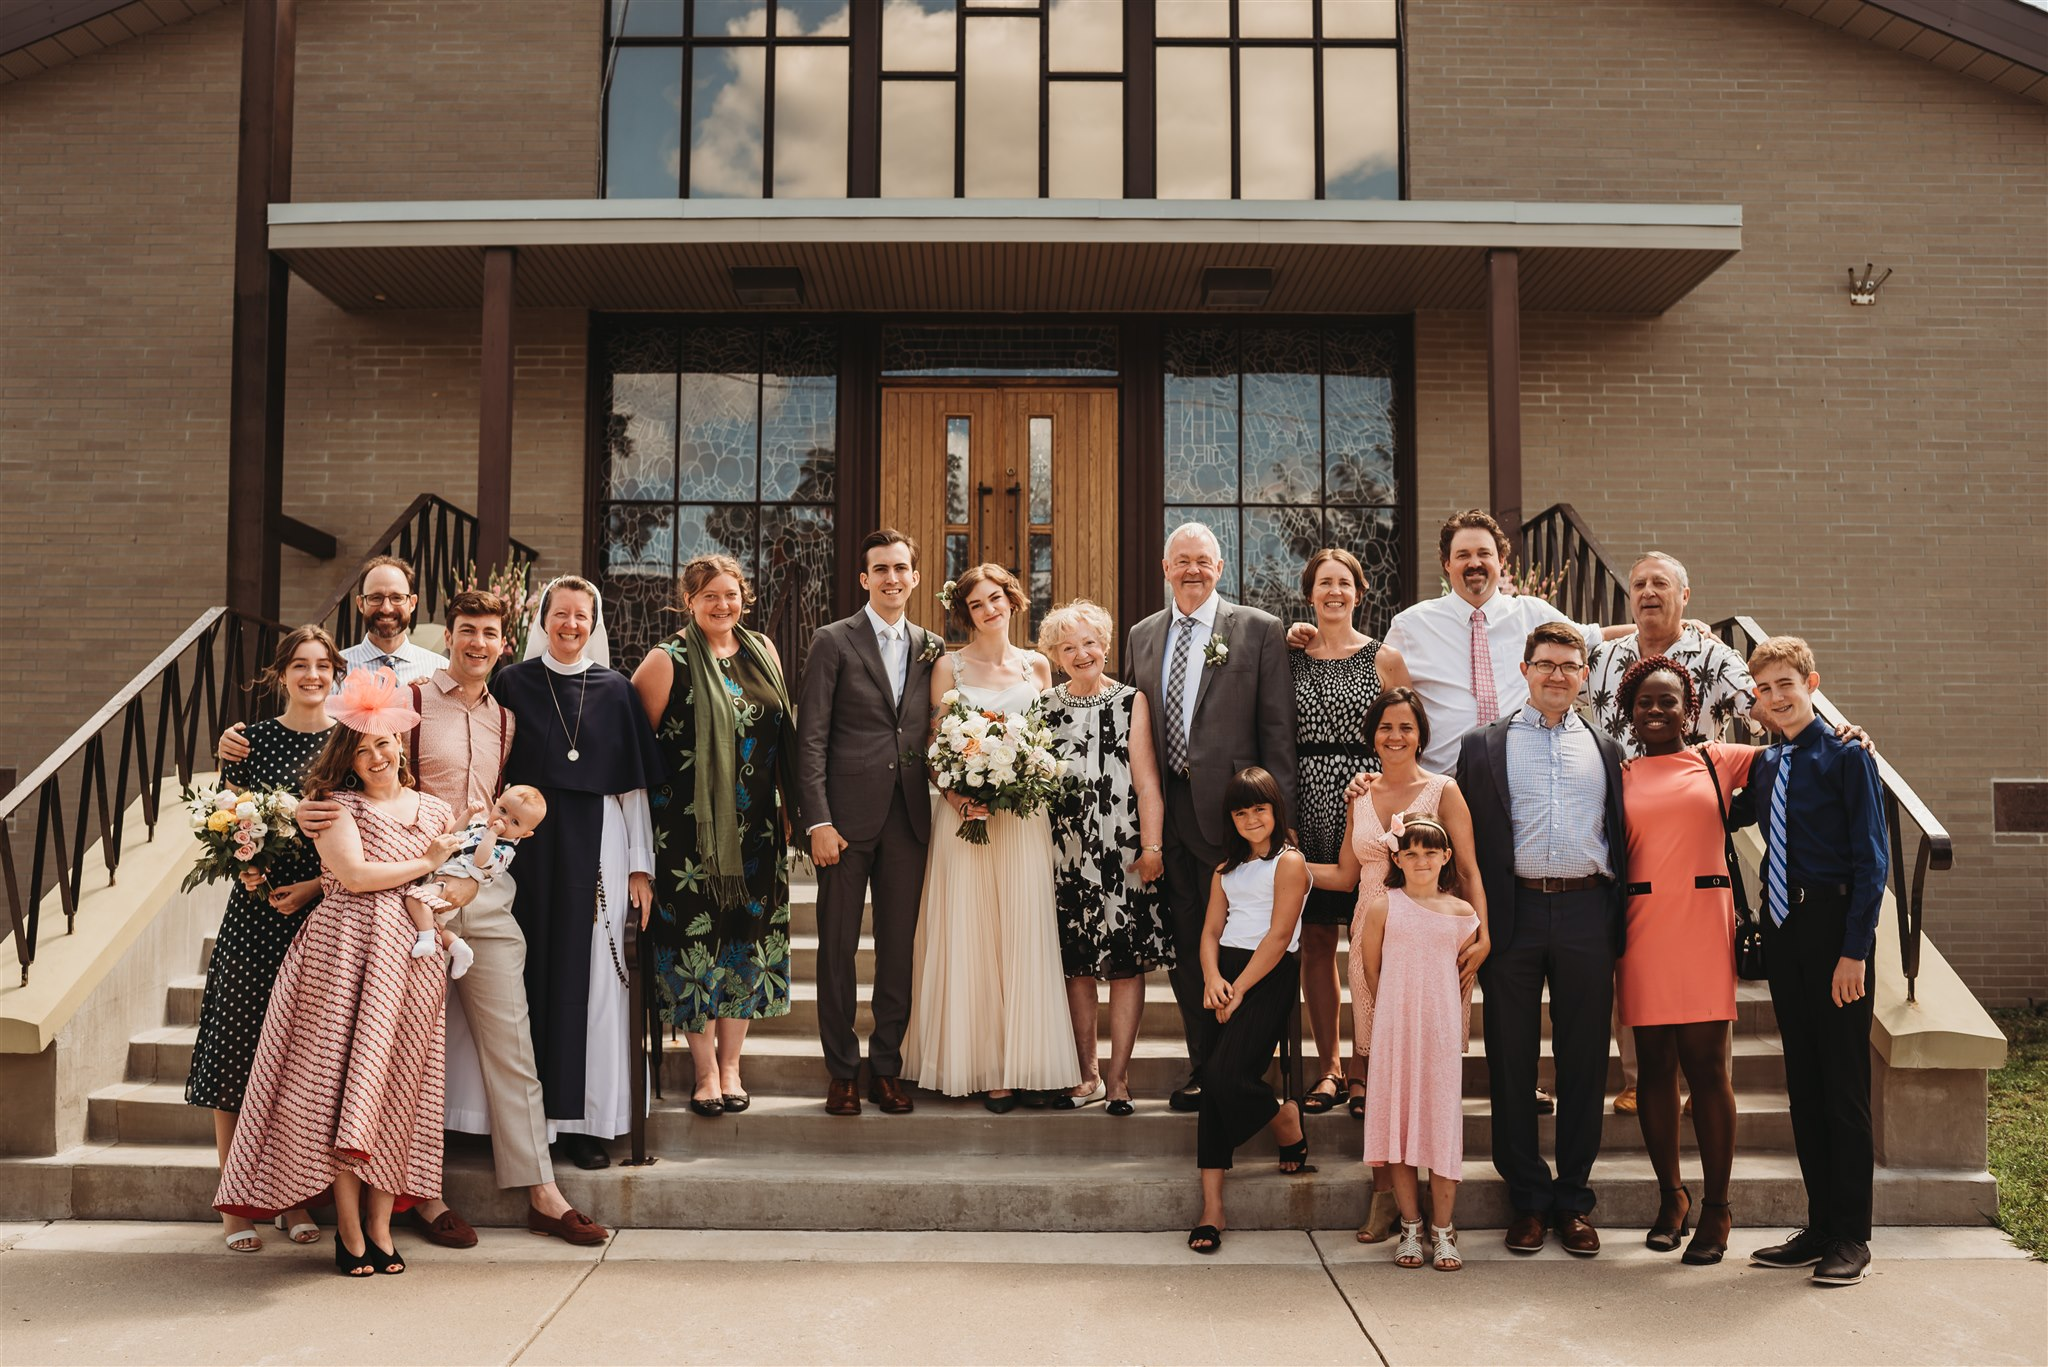 formal wedding photos at our lady of czestochowa polish catholic church